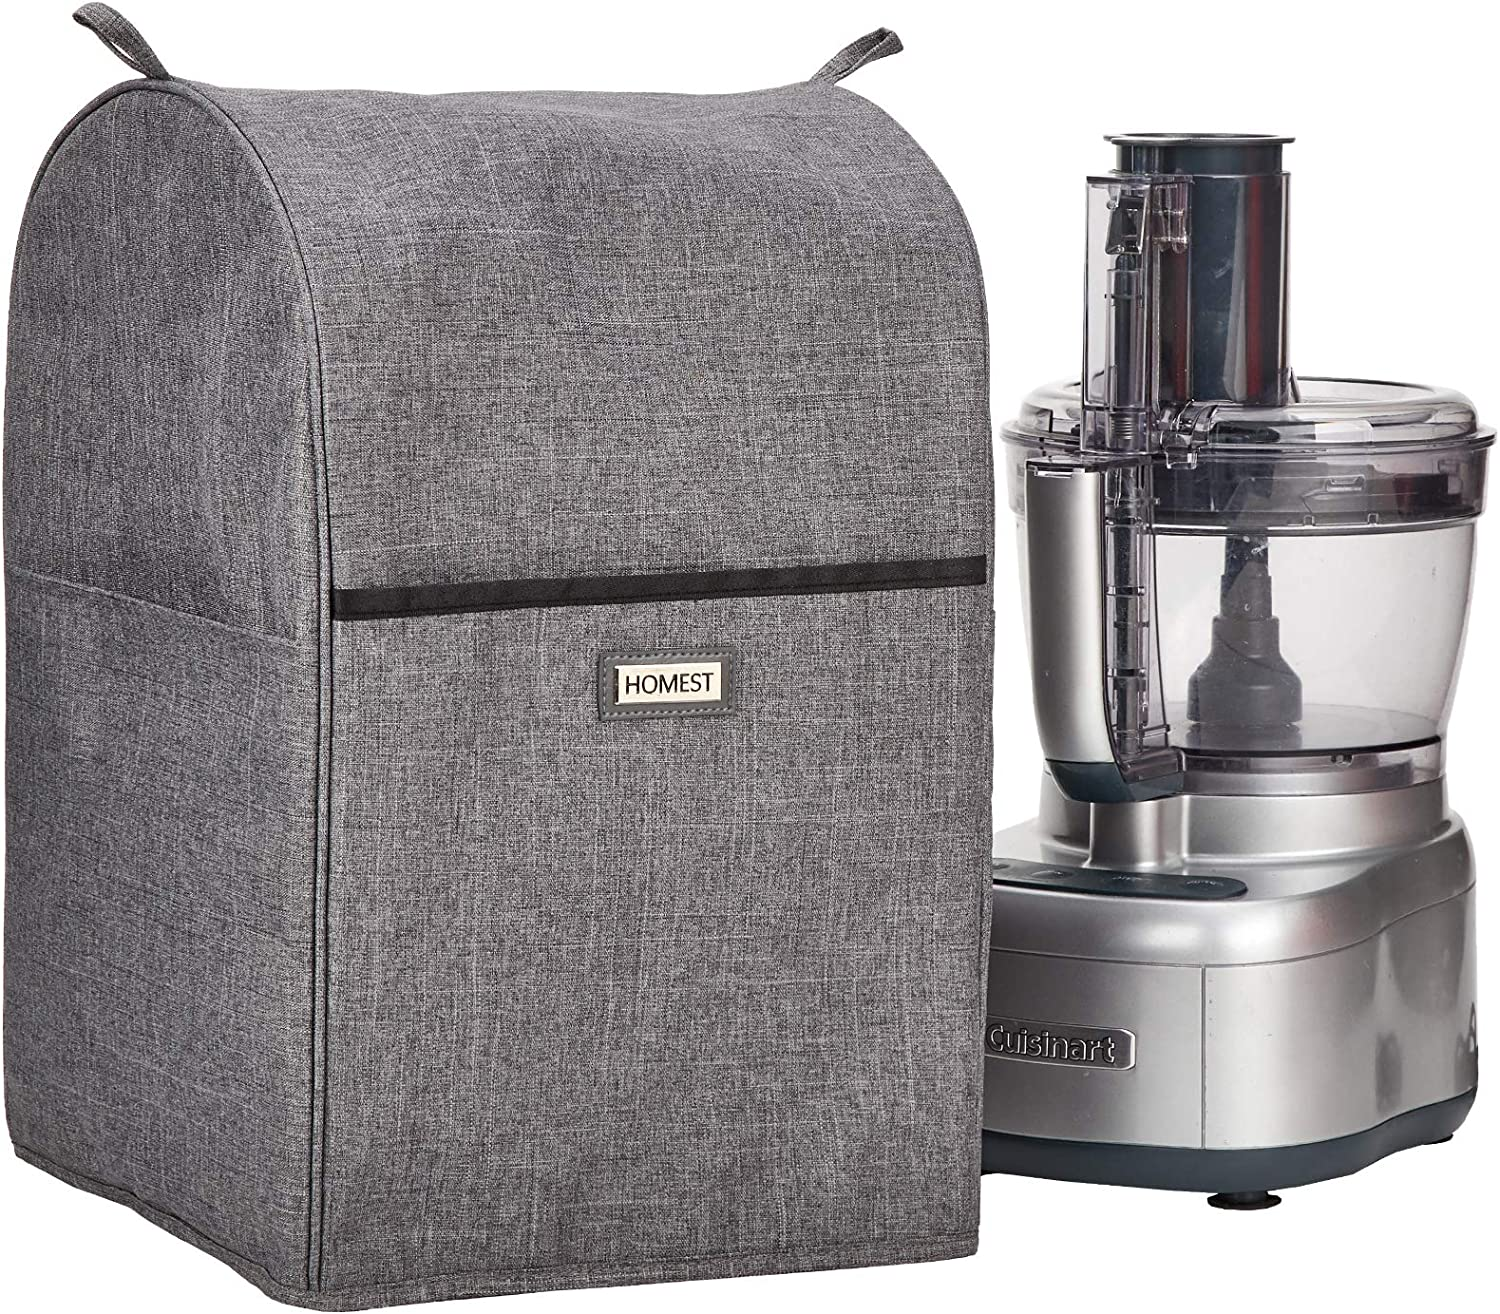 HOMEST Food Processor Dust Cover with Accessory Pockets Compatible with Cuisinart Elemental 8-13 Cup, Grey (Dust Cover Only)